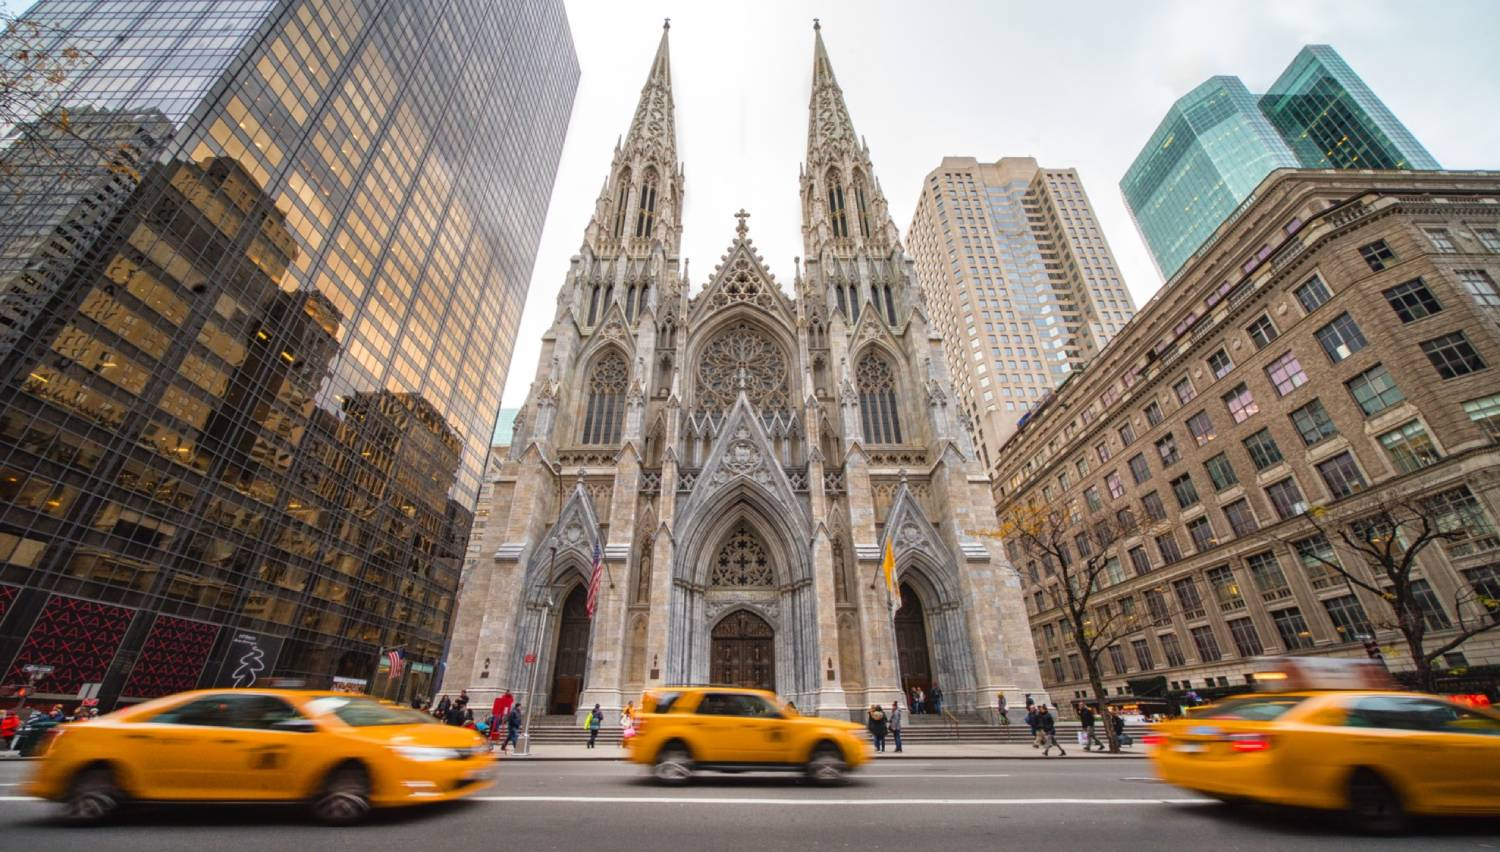 St. Patrick's Cathedral - Things To Do In New York City